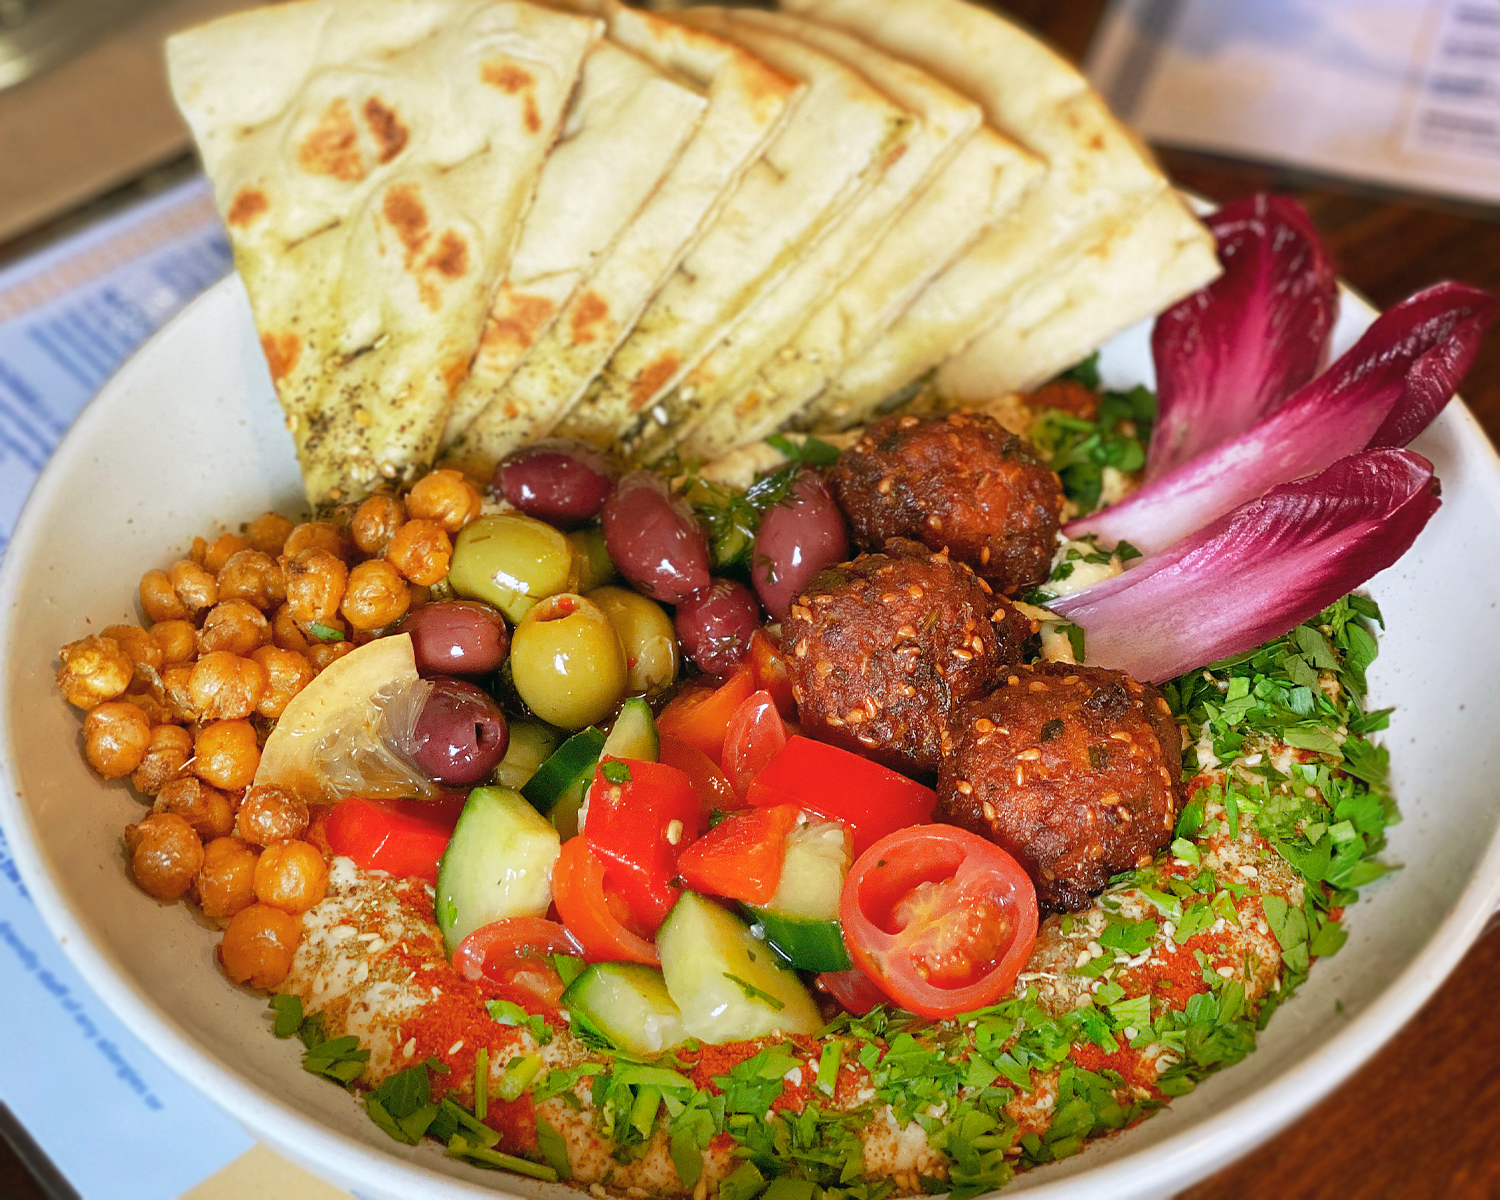 BRUNCH: Hummus bowl with crispy carrot falafels